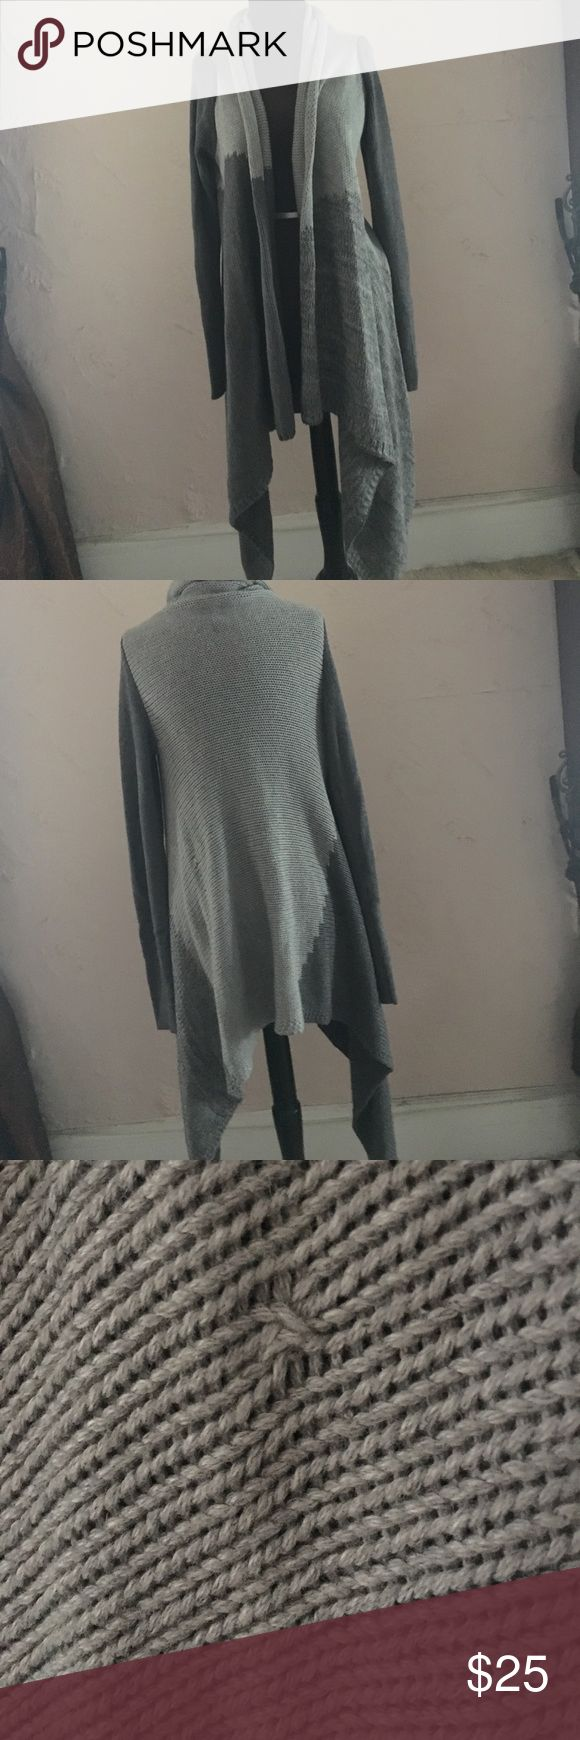 Calvin Klein sweater Light and dark gray sweater, long in front, factory small defect ( see picture) besides that perfect condition Calvin Klein Jeans Sweaters